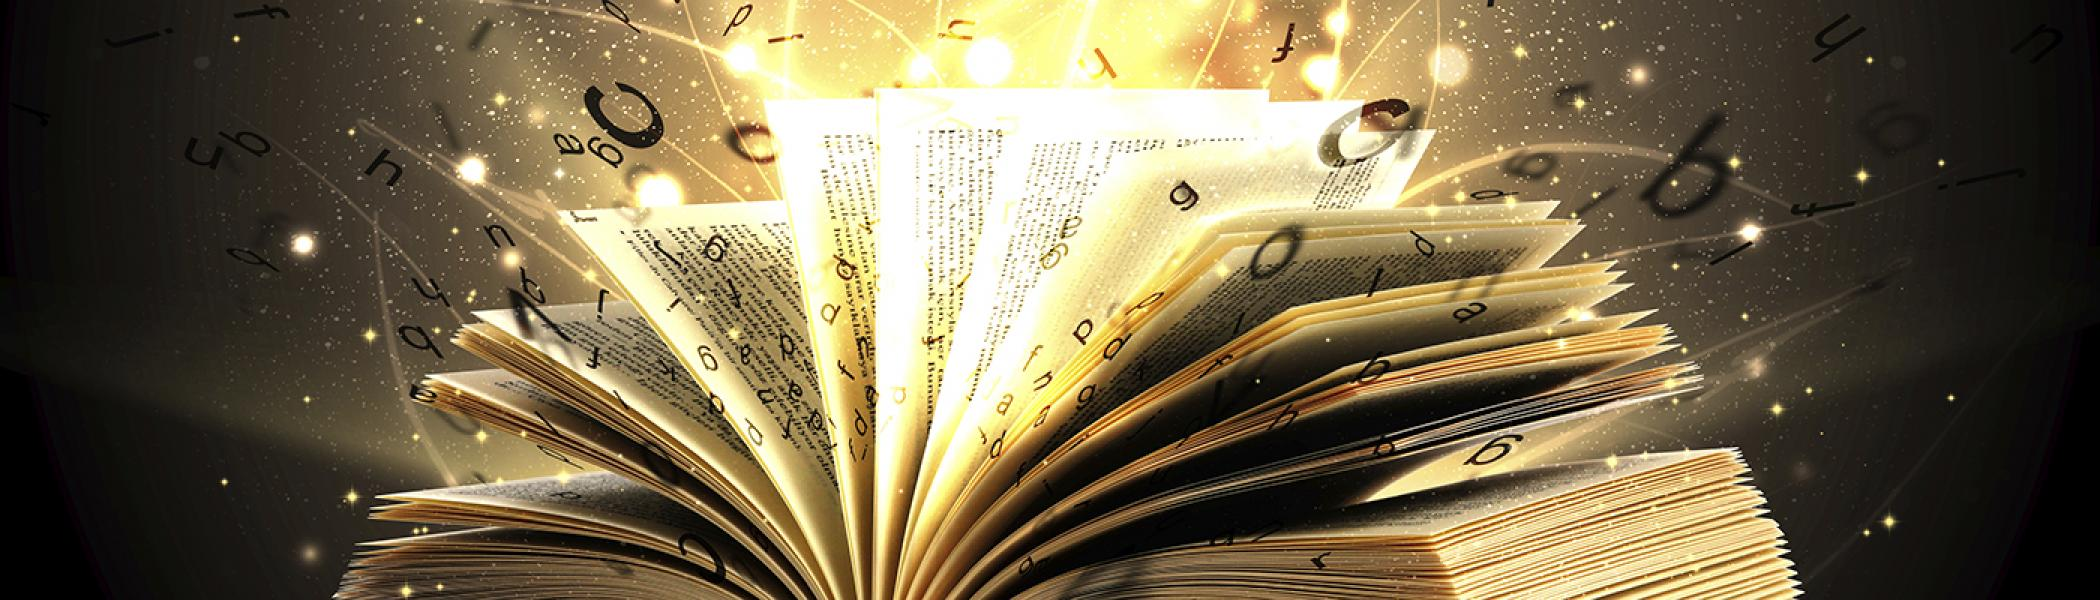 An open book with letters exploding out of the pages like shooting stars